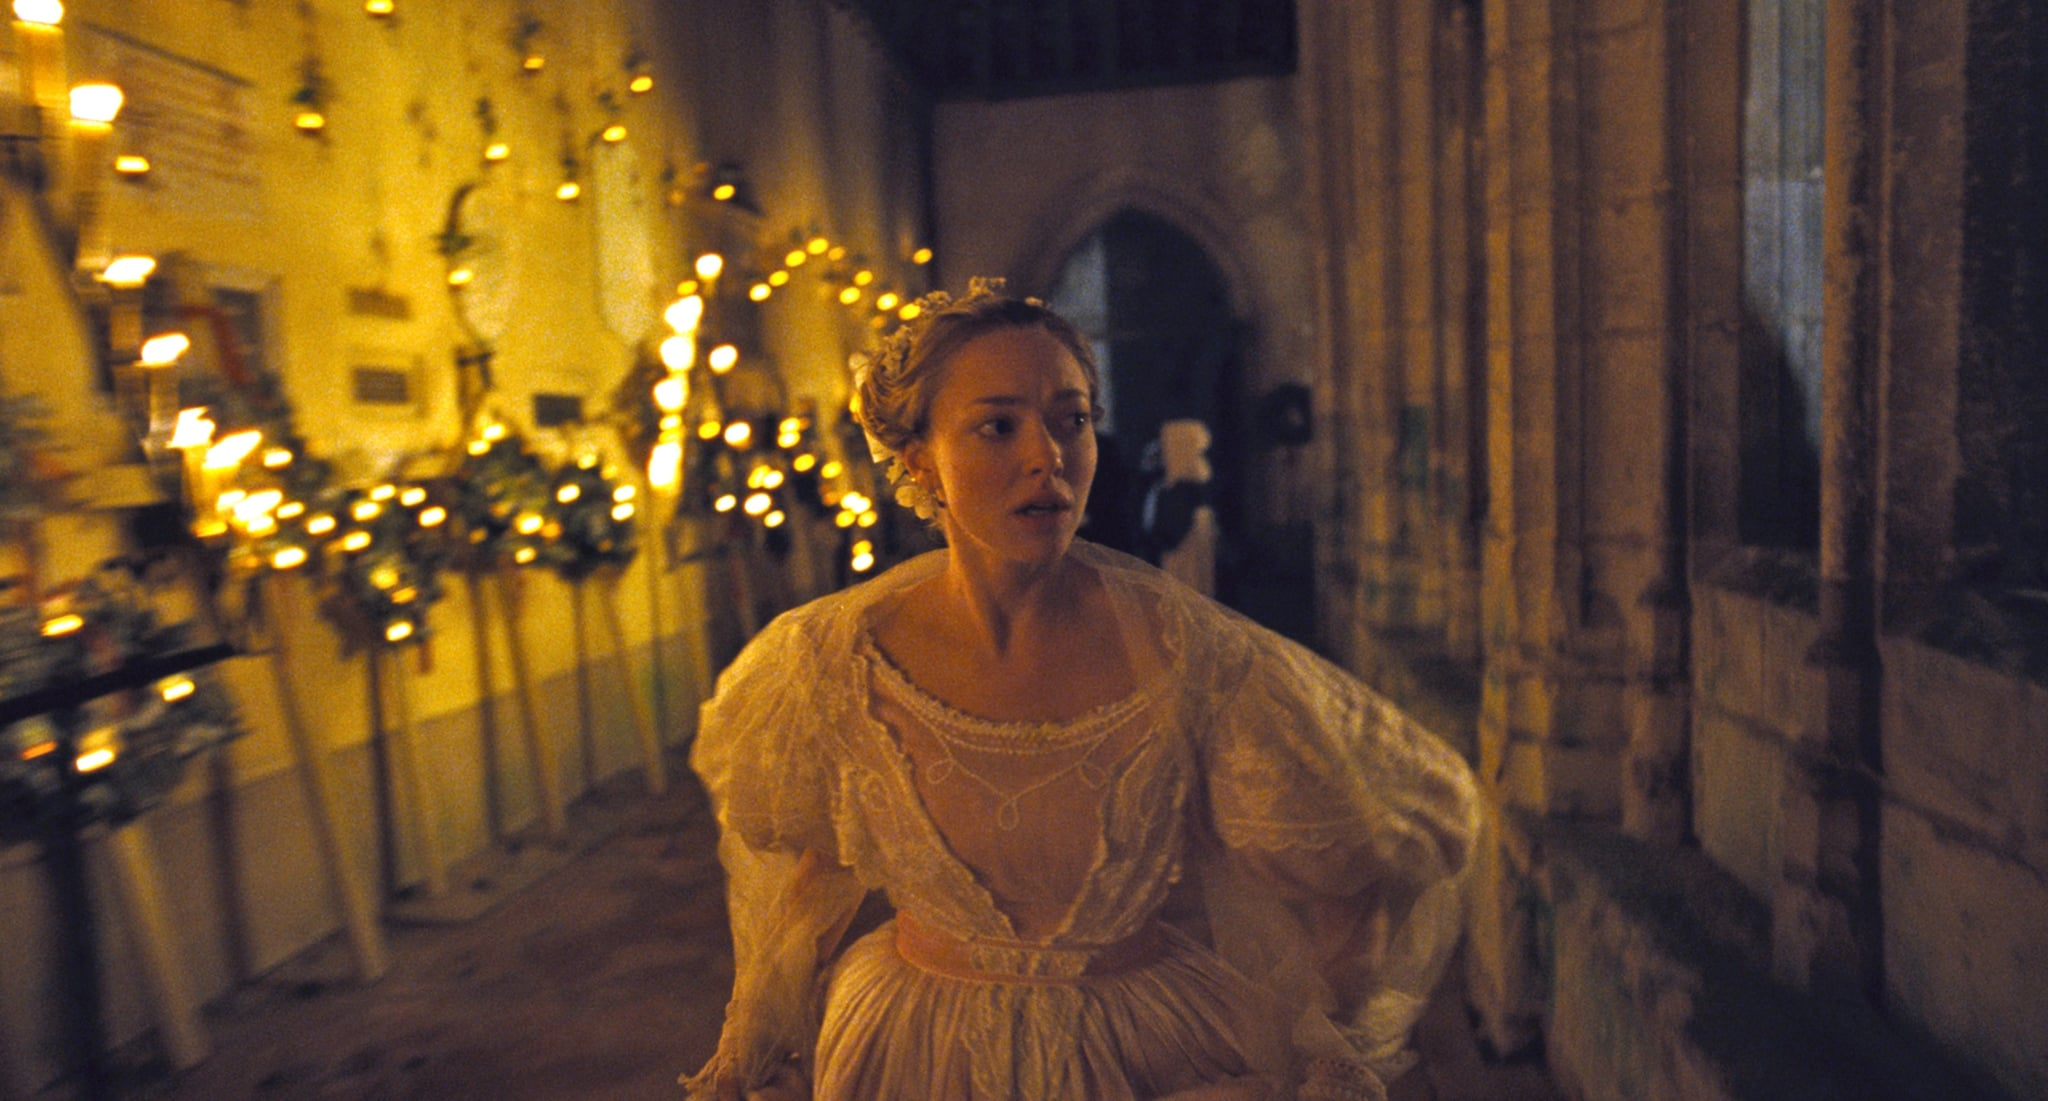 Amanda S Wedding Dress As Cosette In Les Miserables 2012 Amanda Seyfried Already Wore Her Wedding Dress On The Red Carpet Popsugar Fashion Photo 12